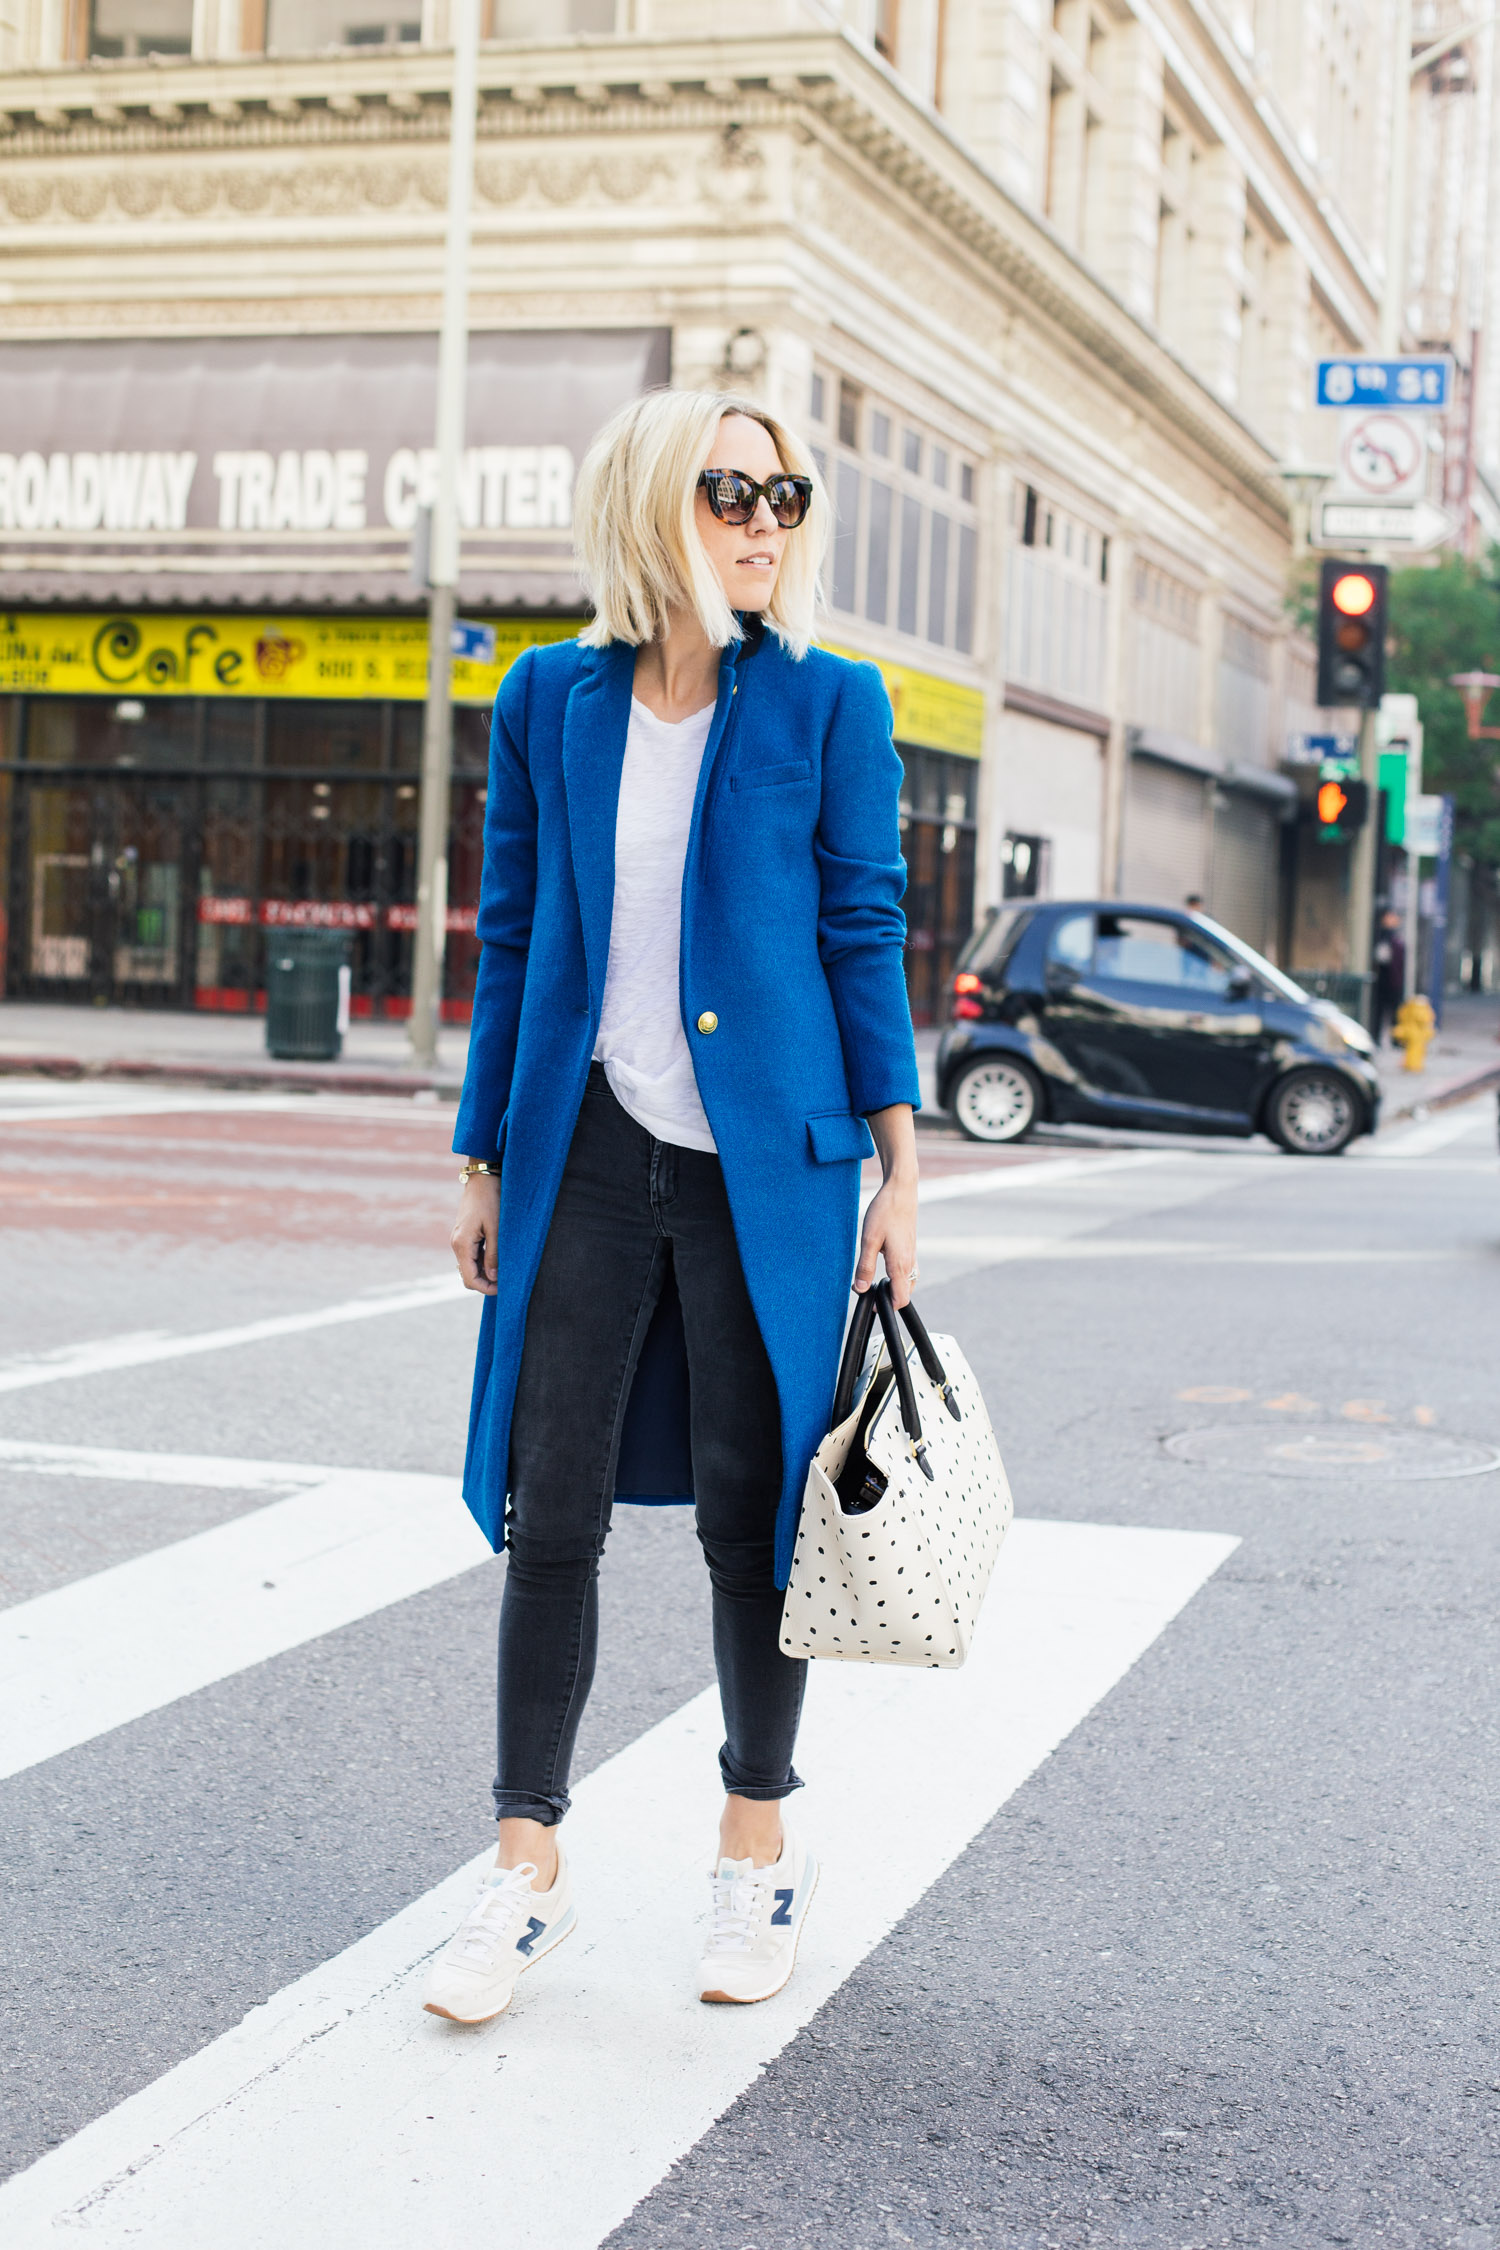 585fb6a944a7 Black And Blue Outfits... Does It Work  - Outfit Inspiration - Just ...